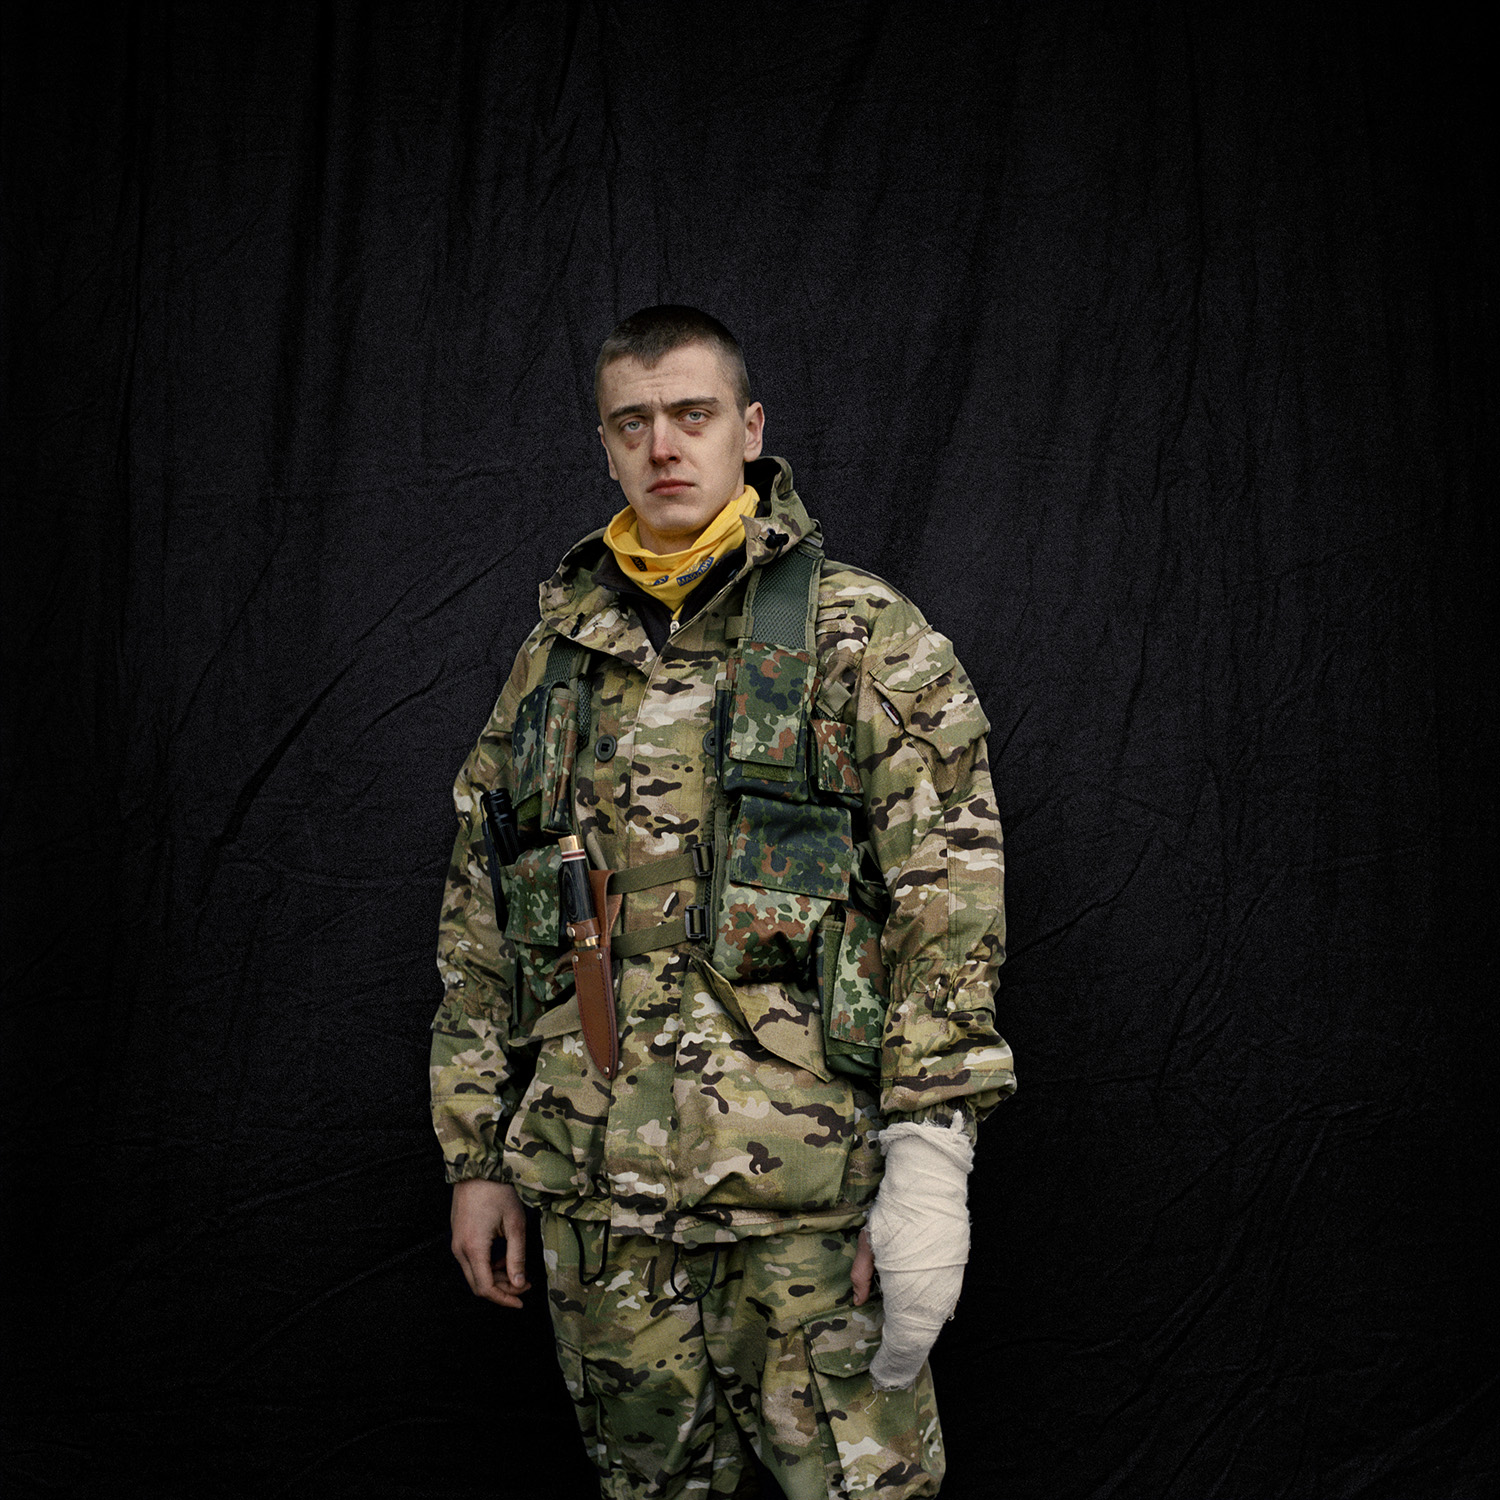 Maidan, Portraits from the Black Square